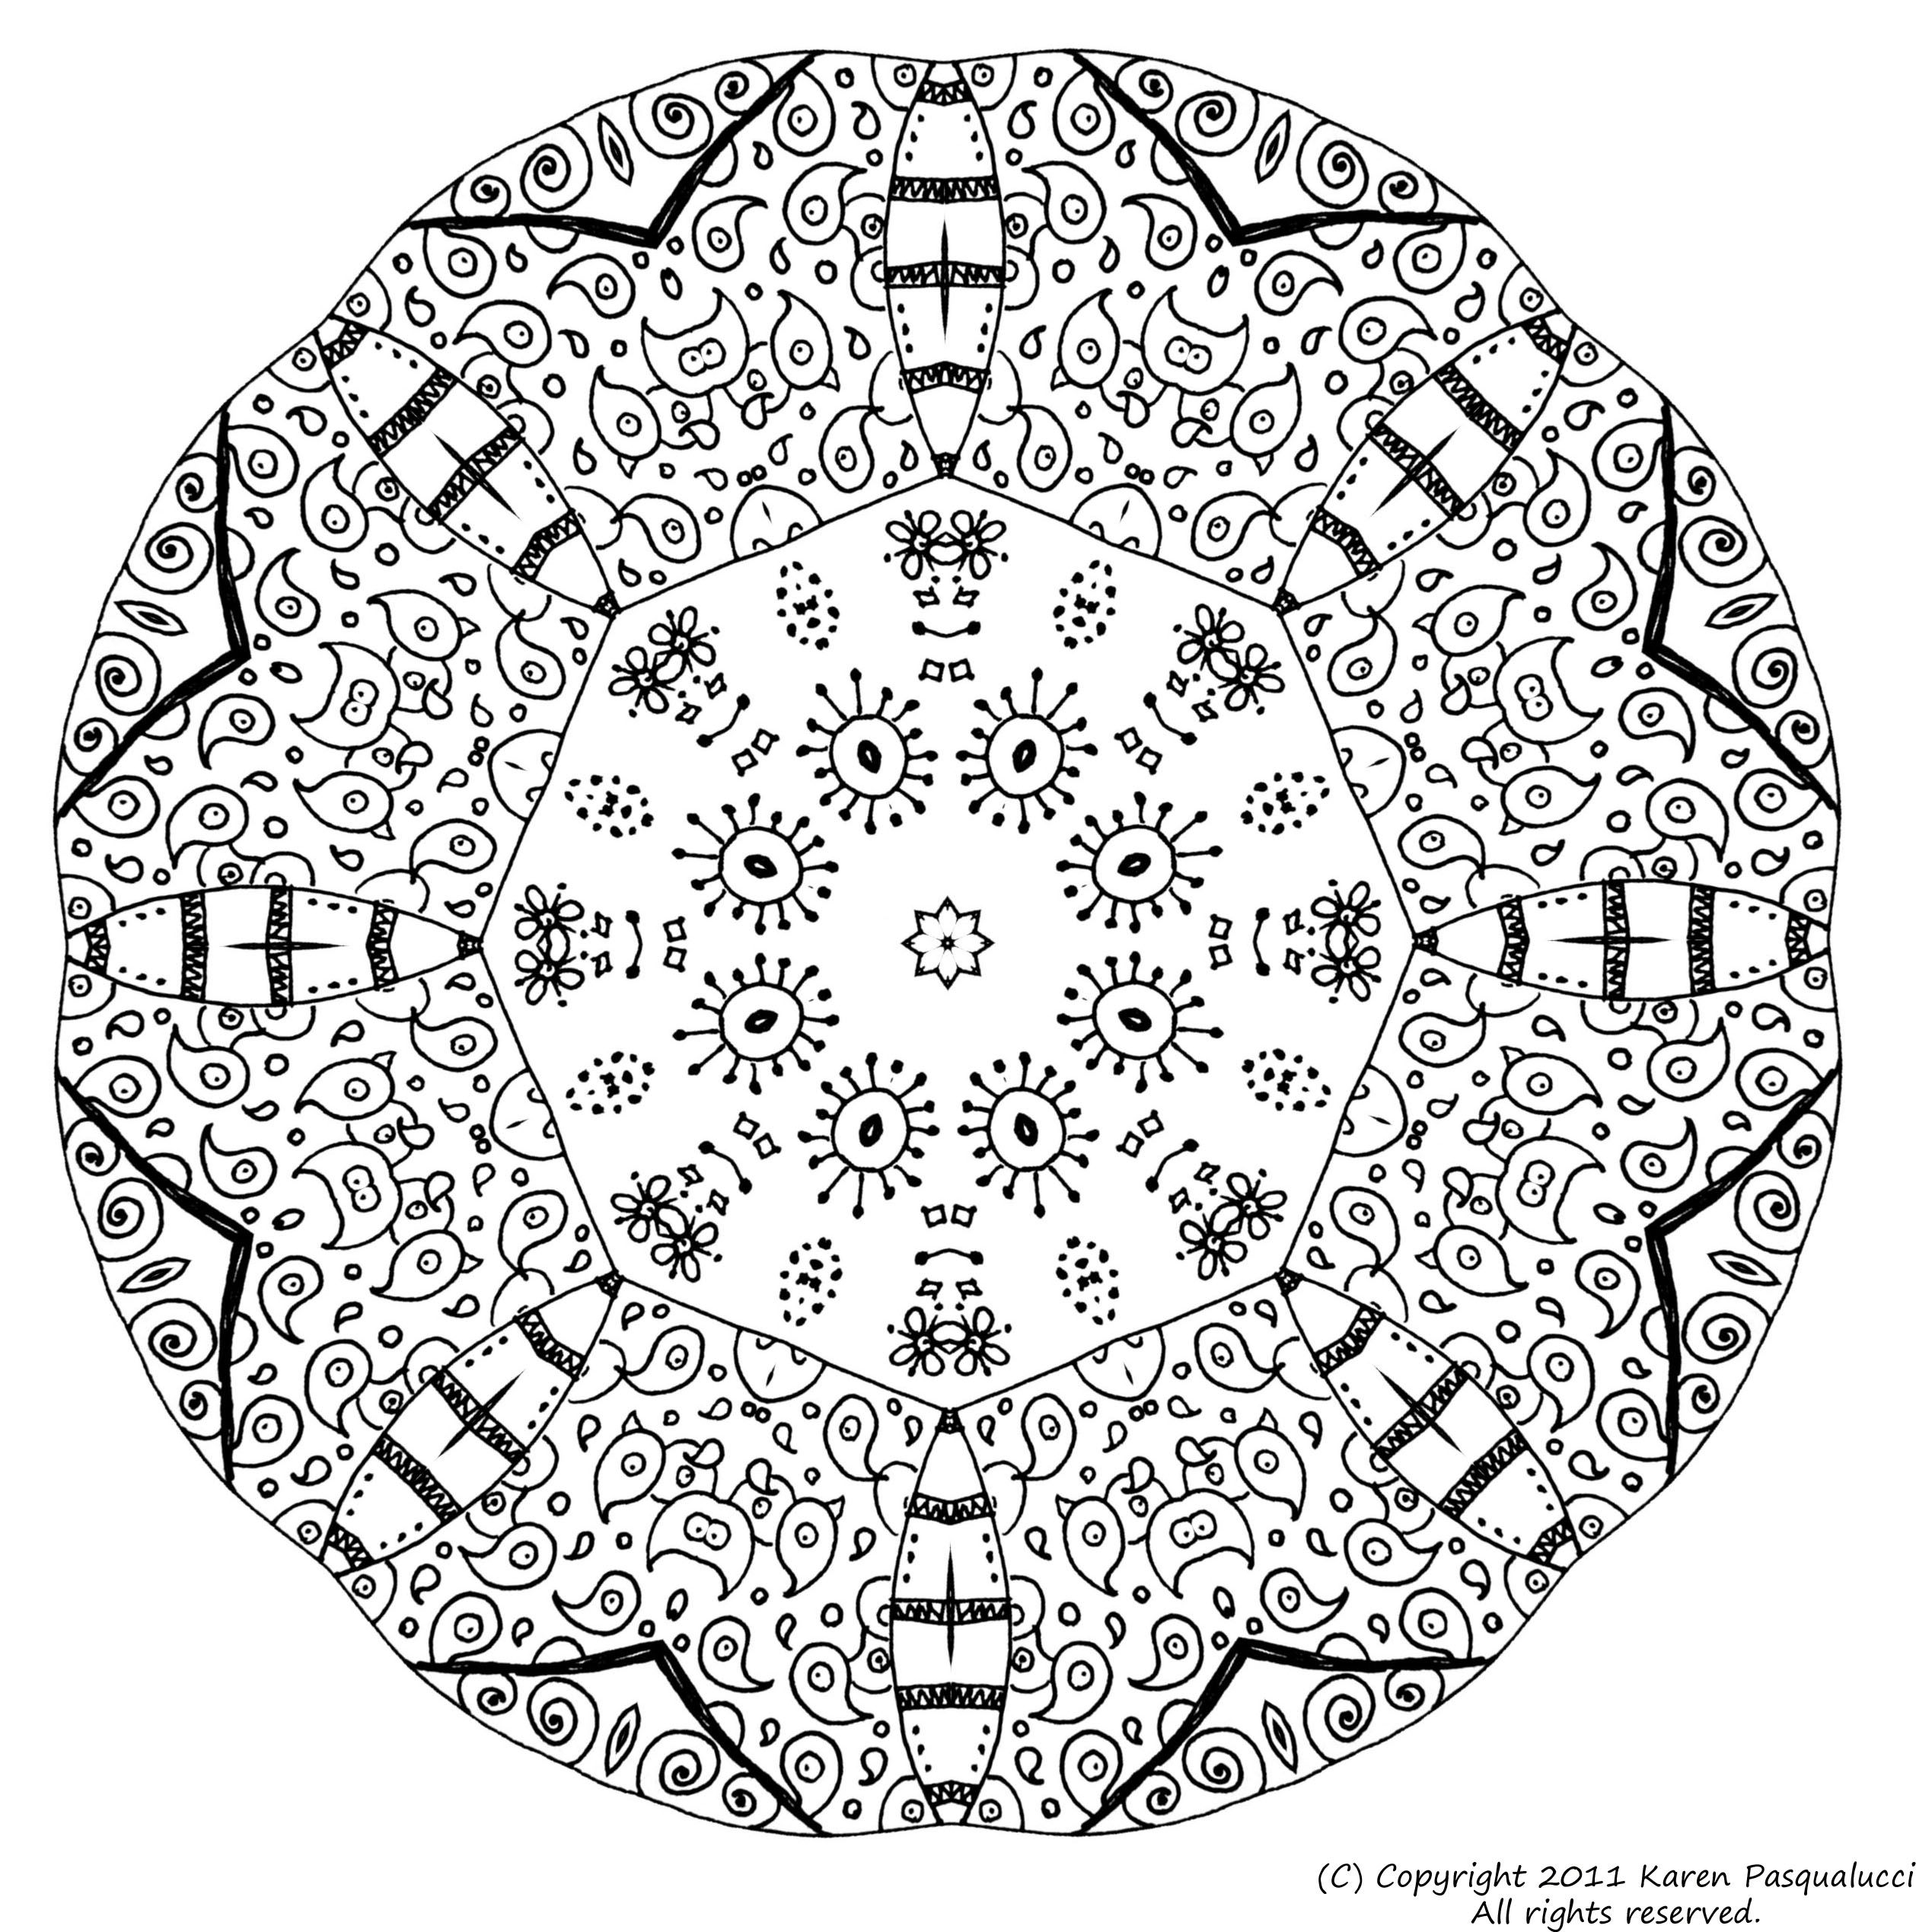 Detailed Coloring Pages For Adults | giftsix | Stress ...Detailed Mandala Coloring Pages For Adults